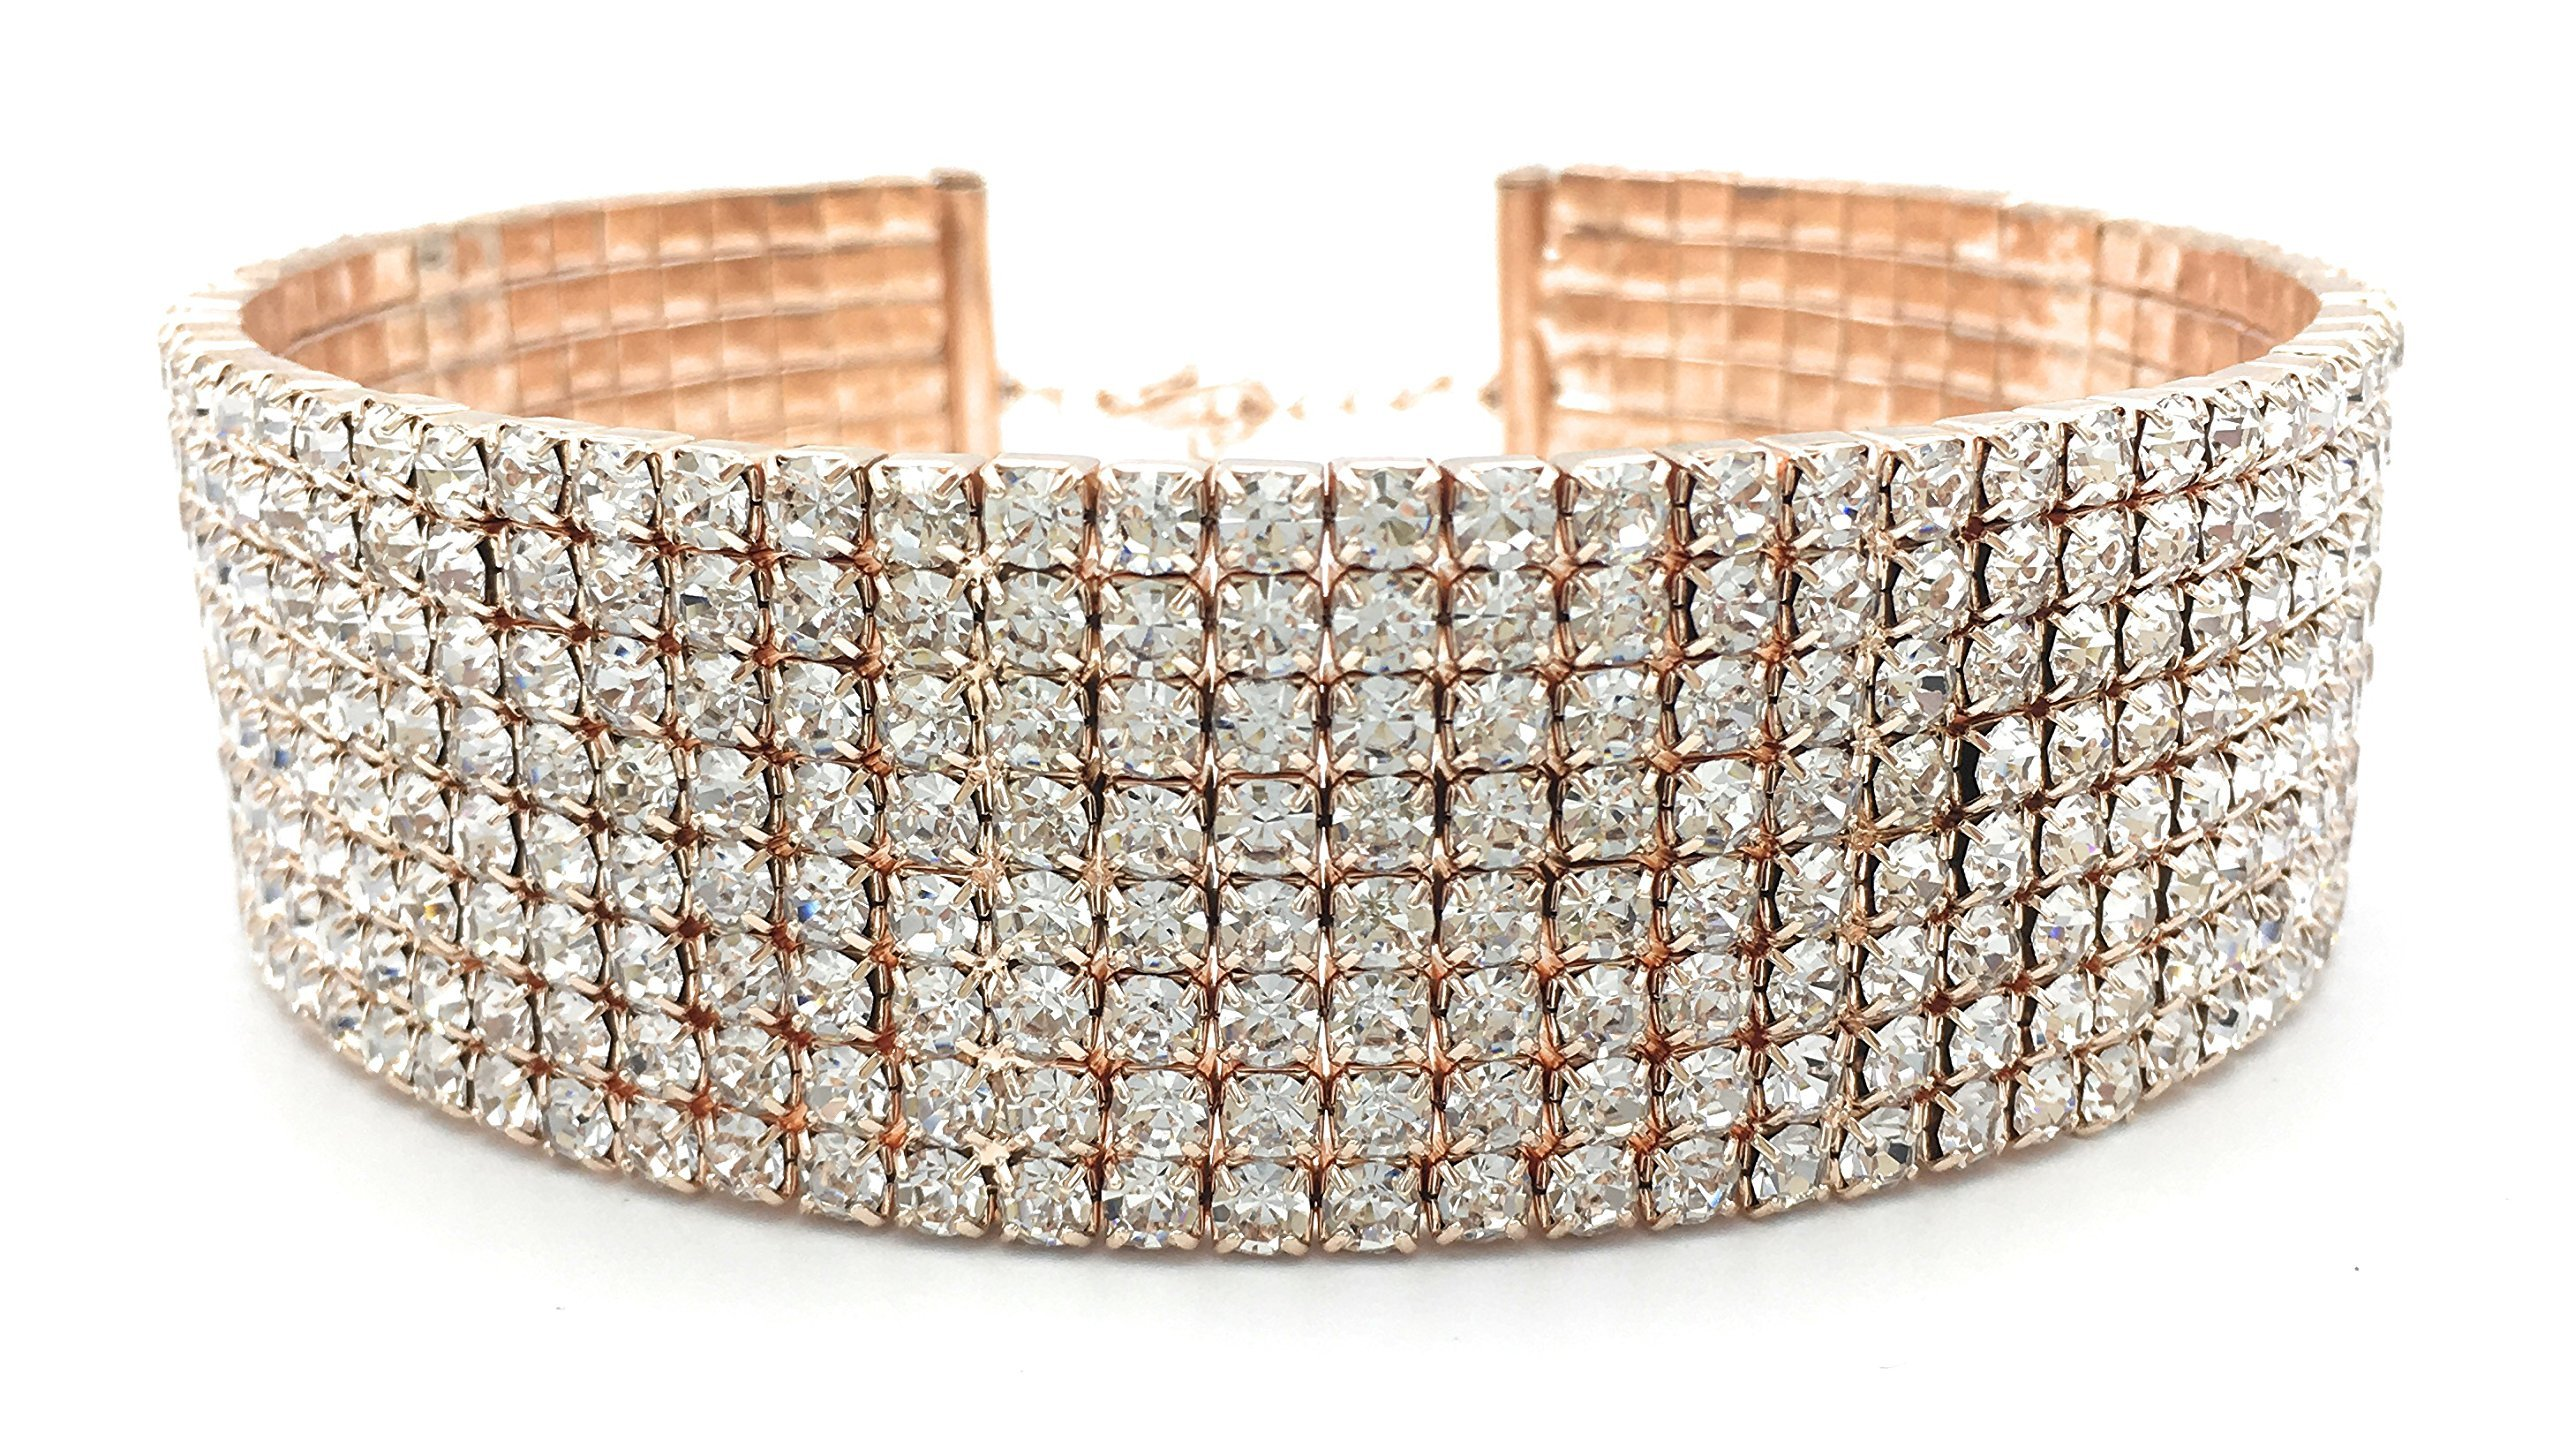 Rose Gold Rhinestone Choker 8 Row - Women's Crystal Diamond Elements Necklace with 5-Inch Extension Chain - Classic Fashion Jewelry Matches Earrings, Bracelets and Rings Flawlessly (8 Row Wide)